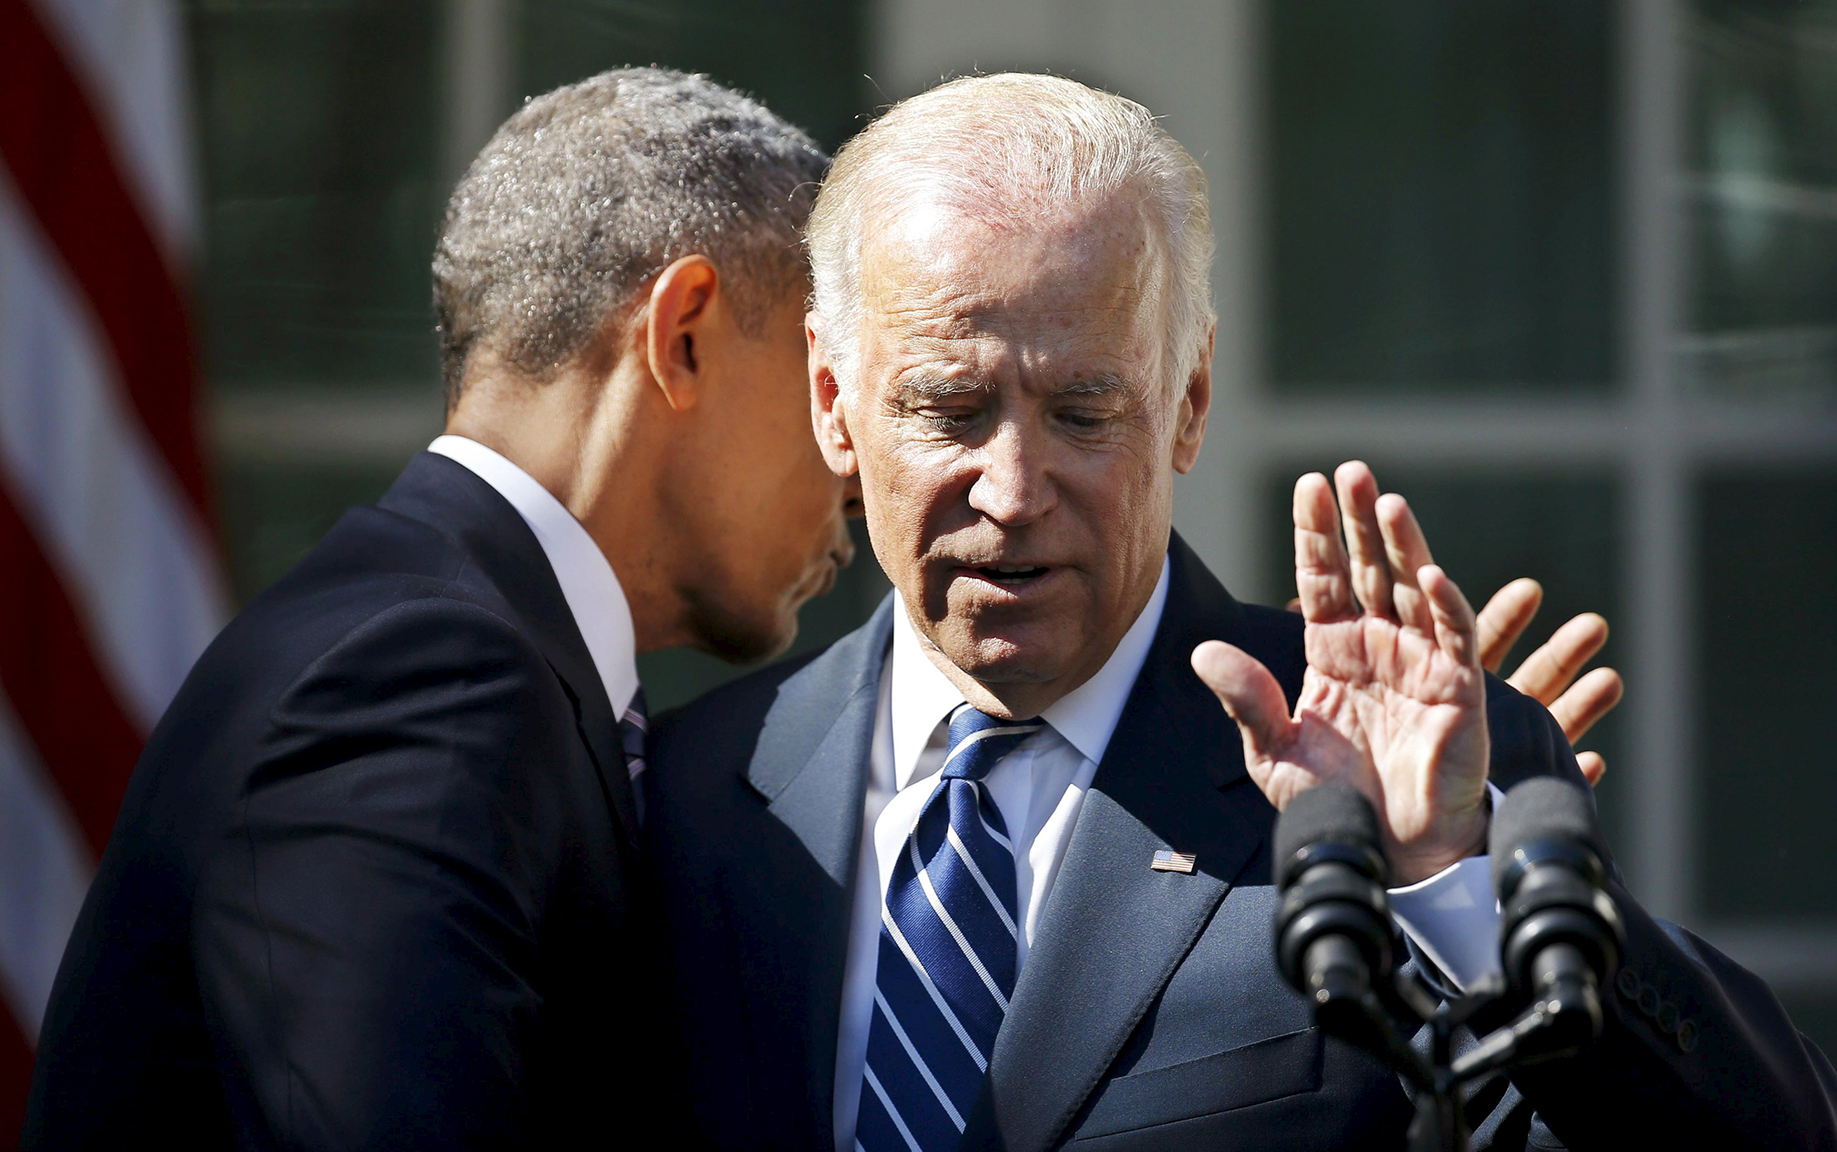 U.S. President Obama hugs Vice President Biden after Biden announced he will not seek the 2016 Democratic presidential nomination during an appearance at the White House in Washington